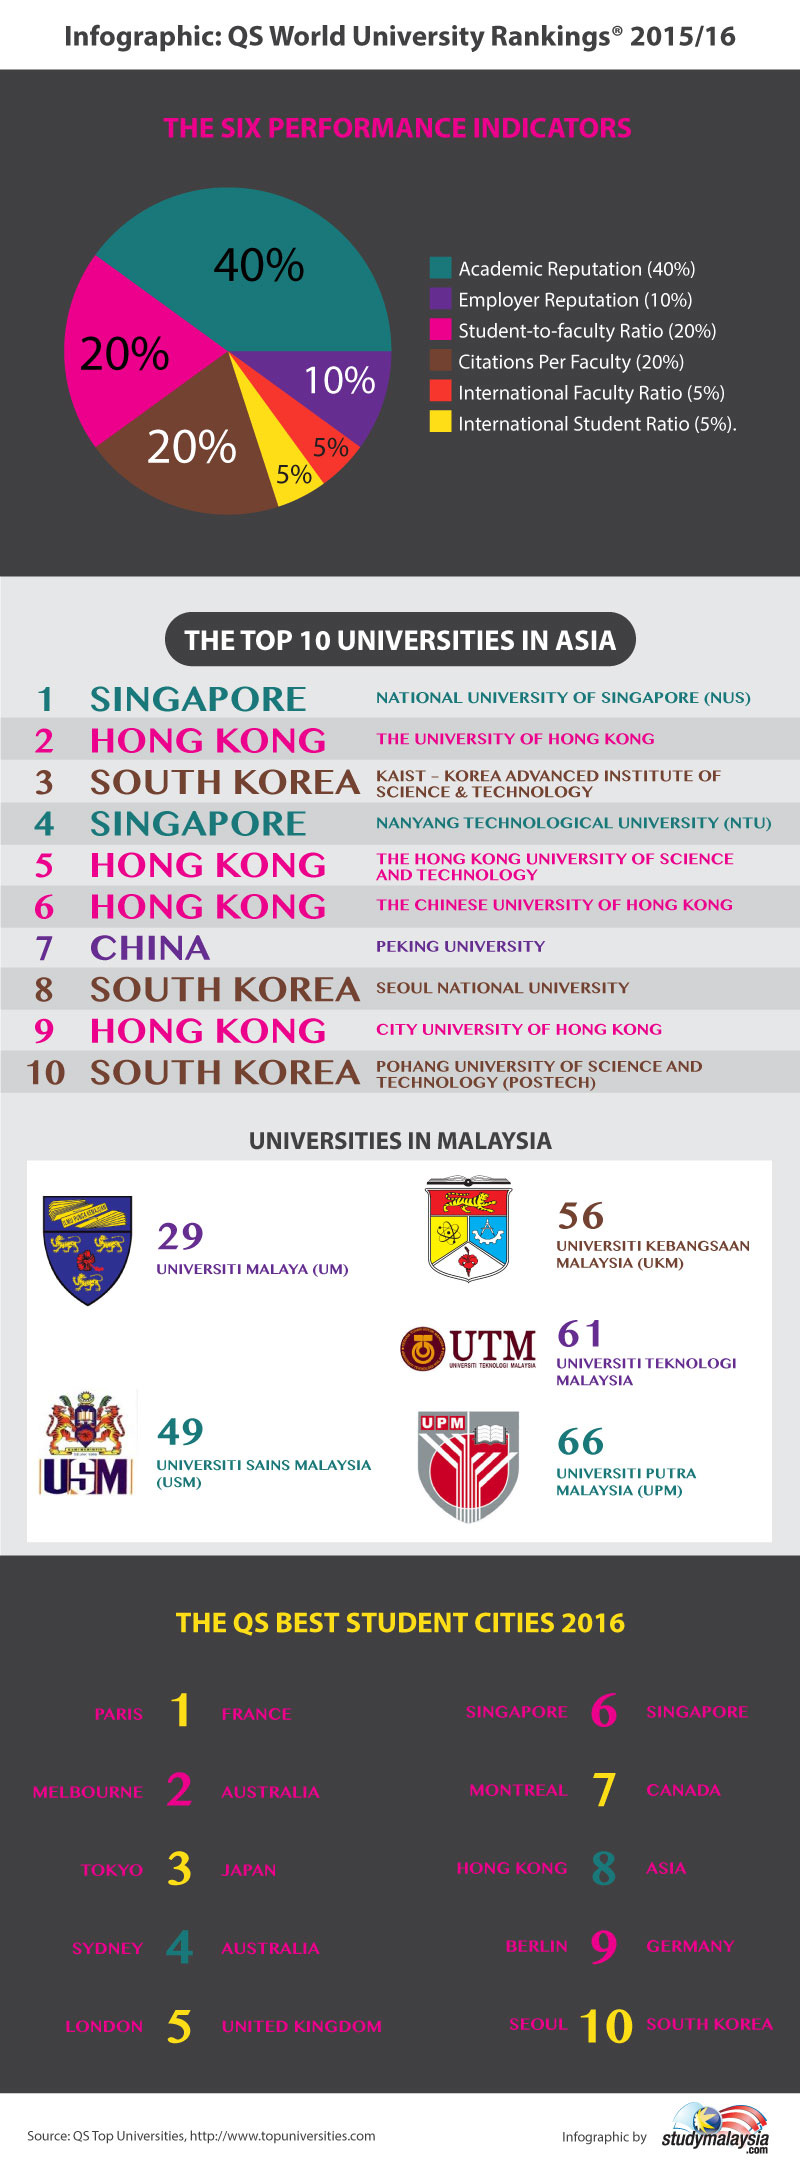 Who's Top in the QS World University Rankings 2015/16 and the Best Student Cities in the World - StudyMalaysia.com